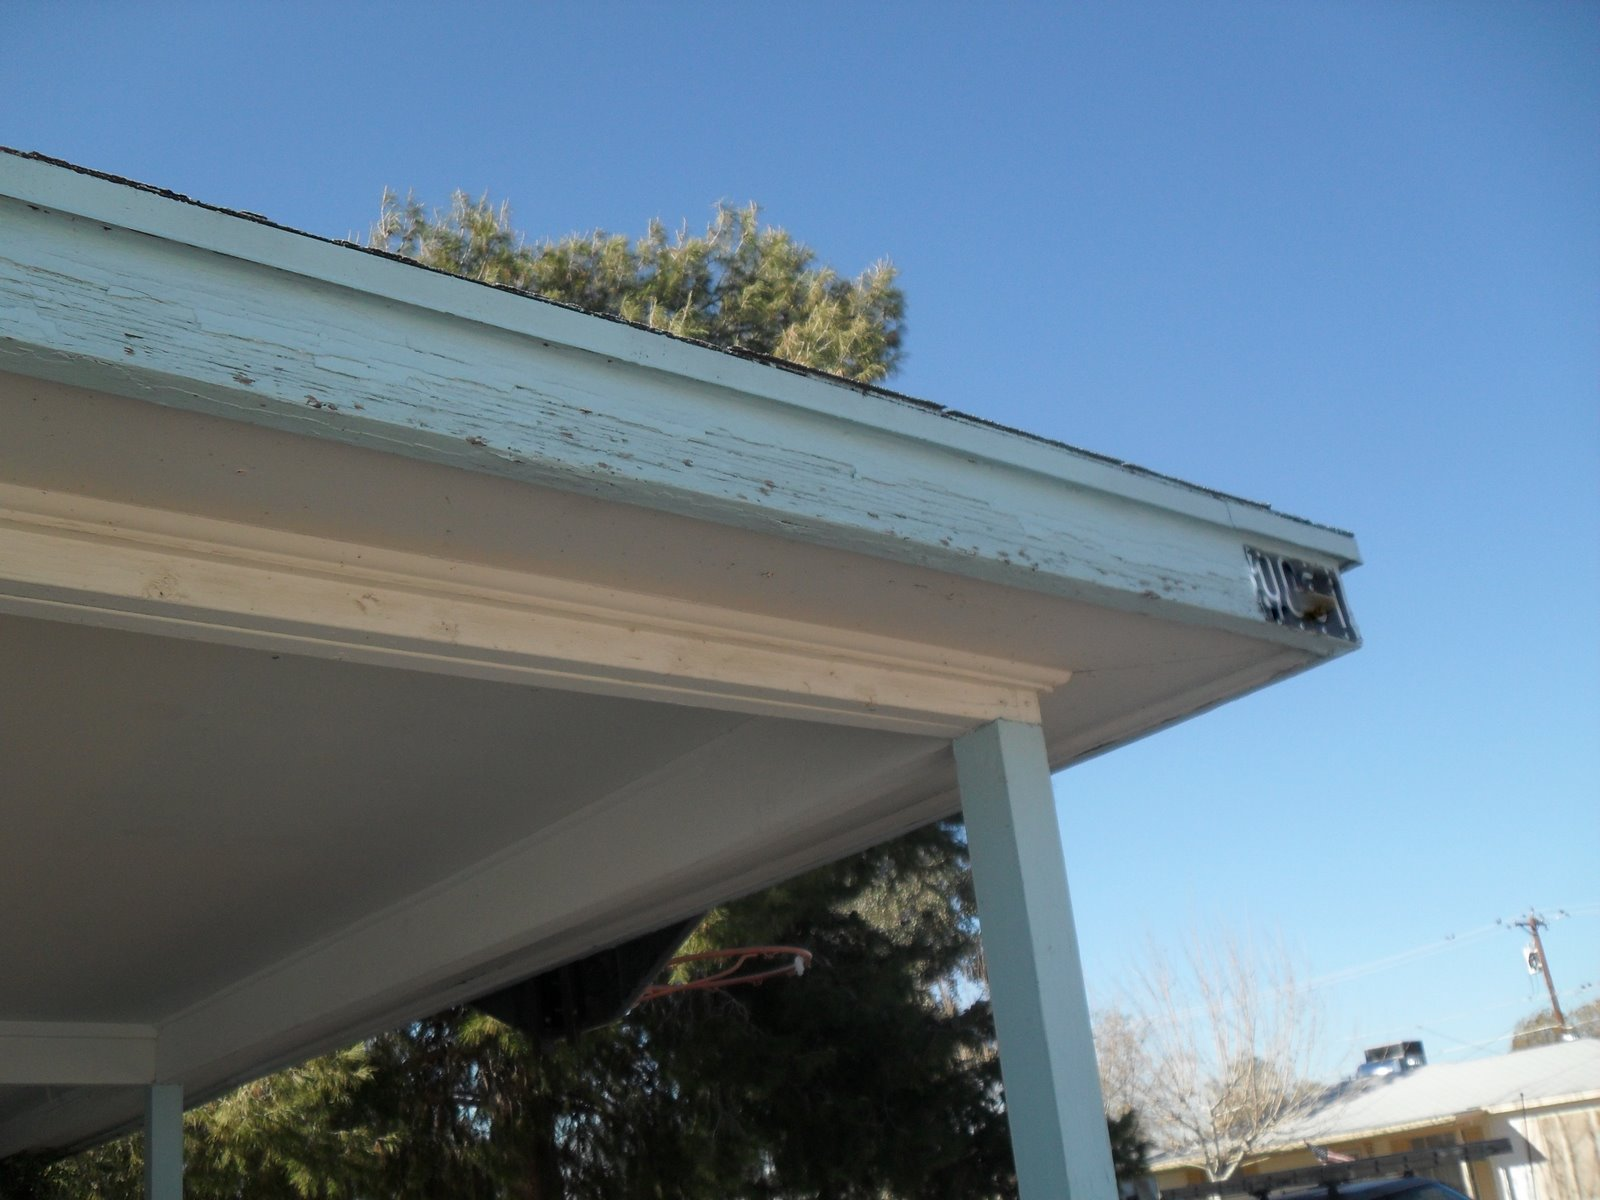 How to paint fascia boards - Fascia Board Paint Damaged By Hail Re Painting Covered